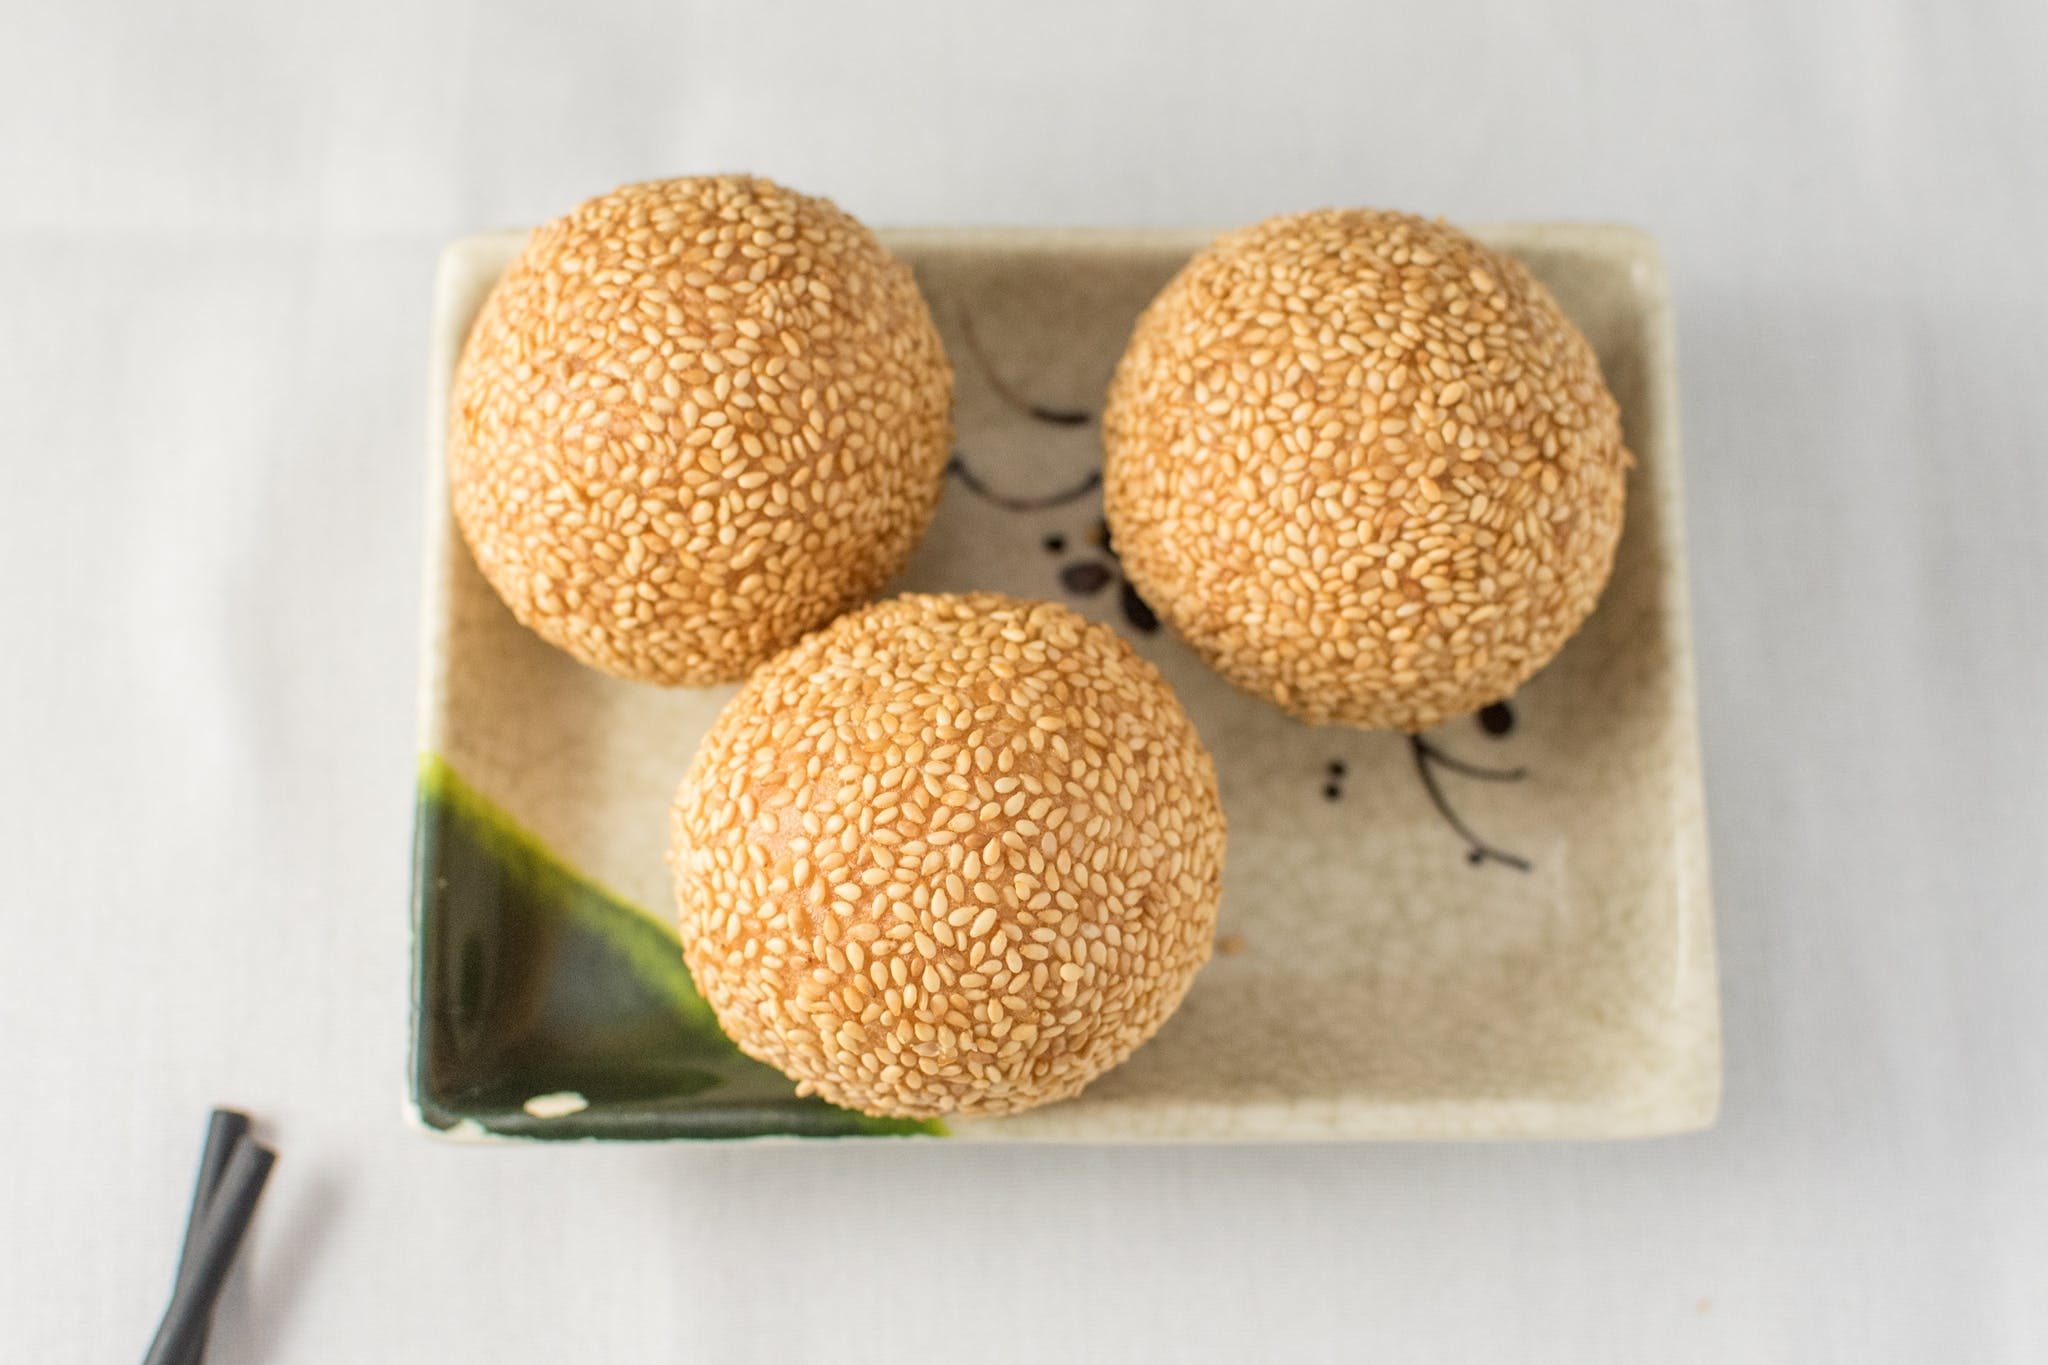 32. Deep-Fried Sesame Ball (V) from Nani Restaurant in Madison, WI